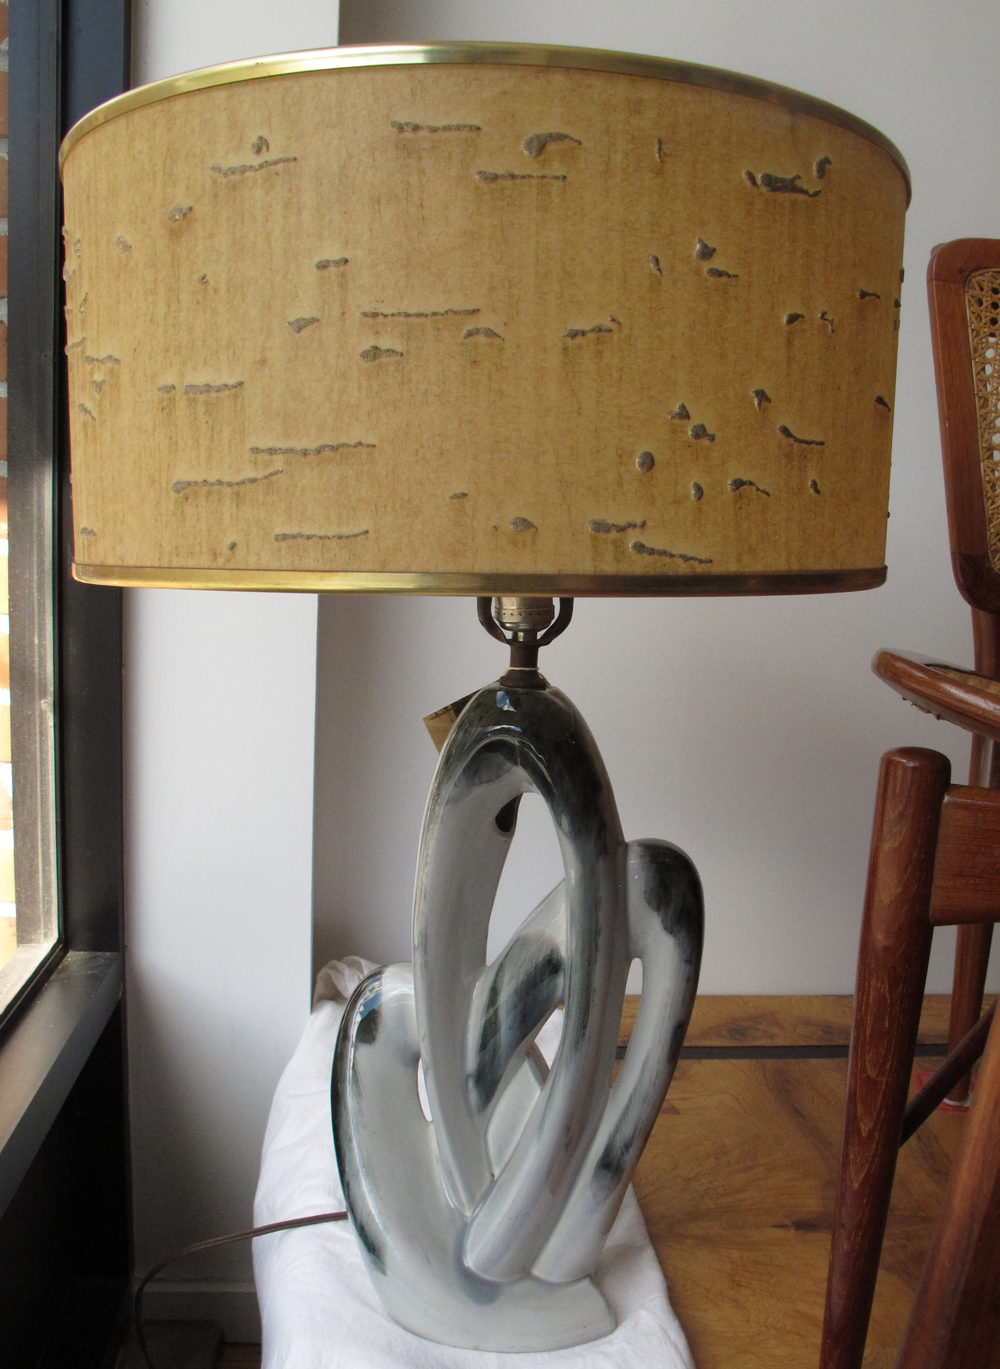 ABSTRACT MID CENTURY SCULPTURAL GLASS LAMP